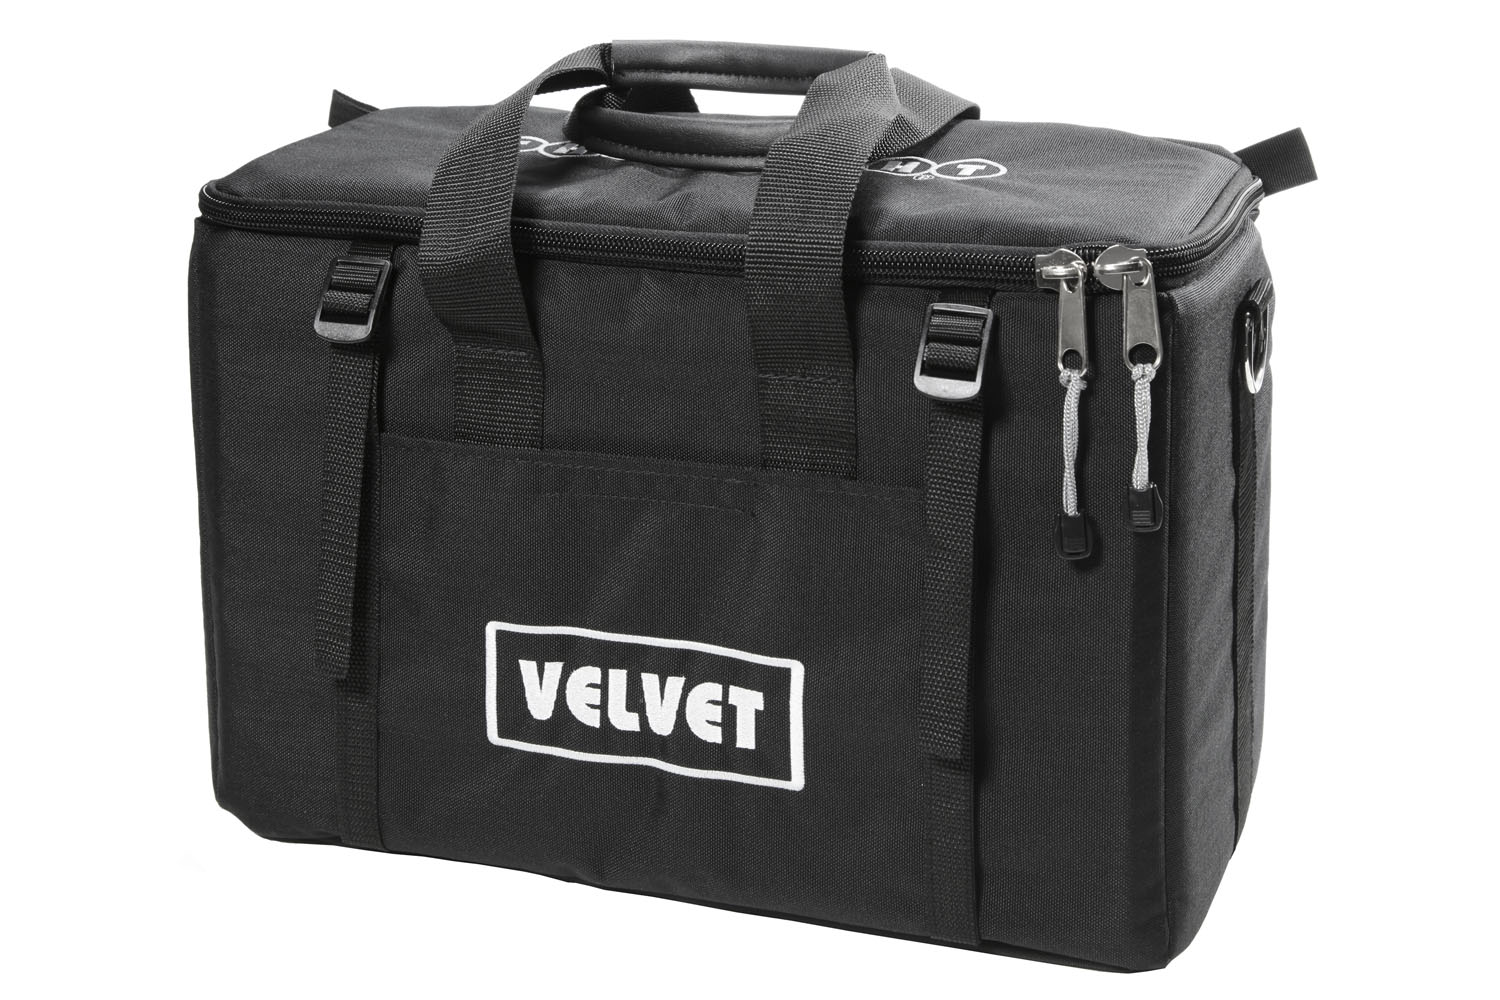 VELVET MINI 1 Cordura soft bag